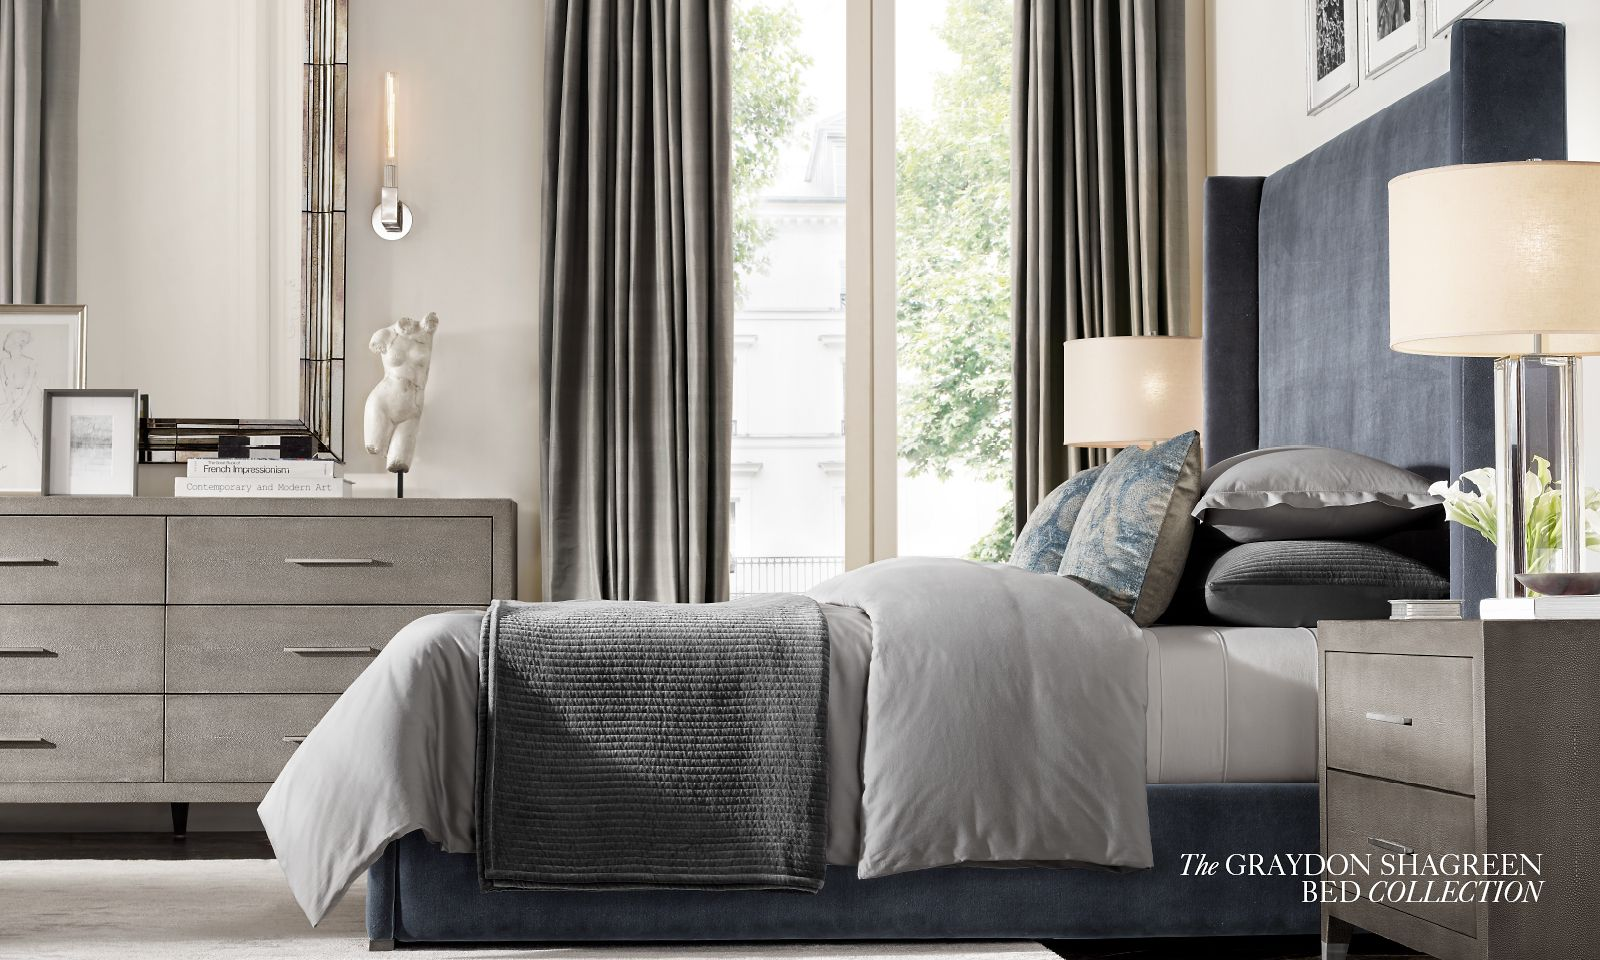 Introducing the Graydon Shagreen Collection  The Graydon Shagreen Bed  Collection ...